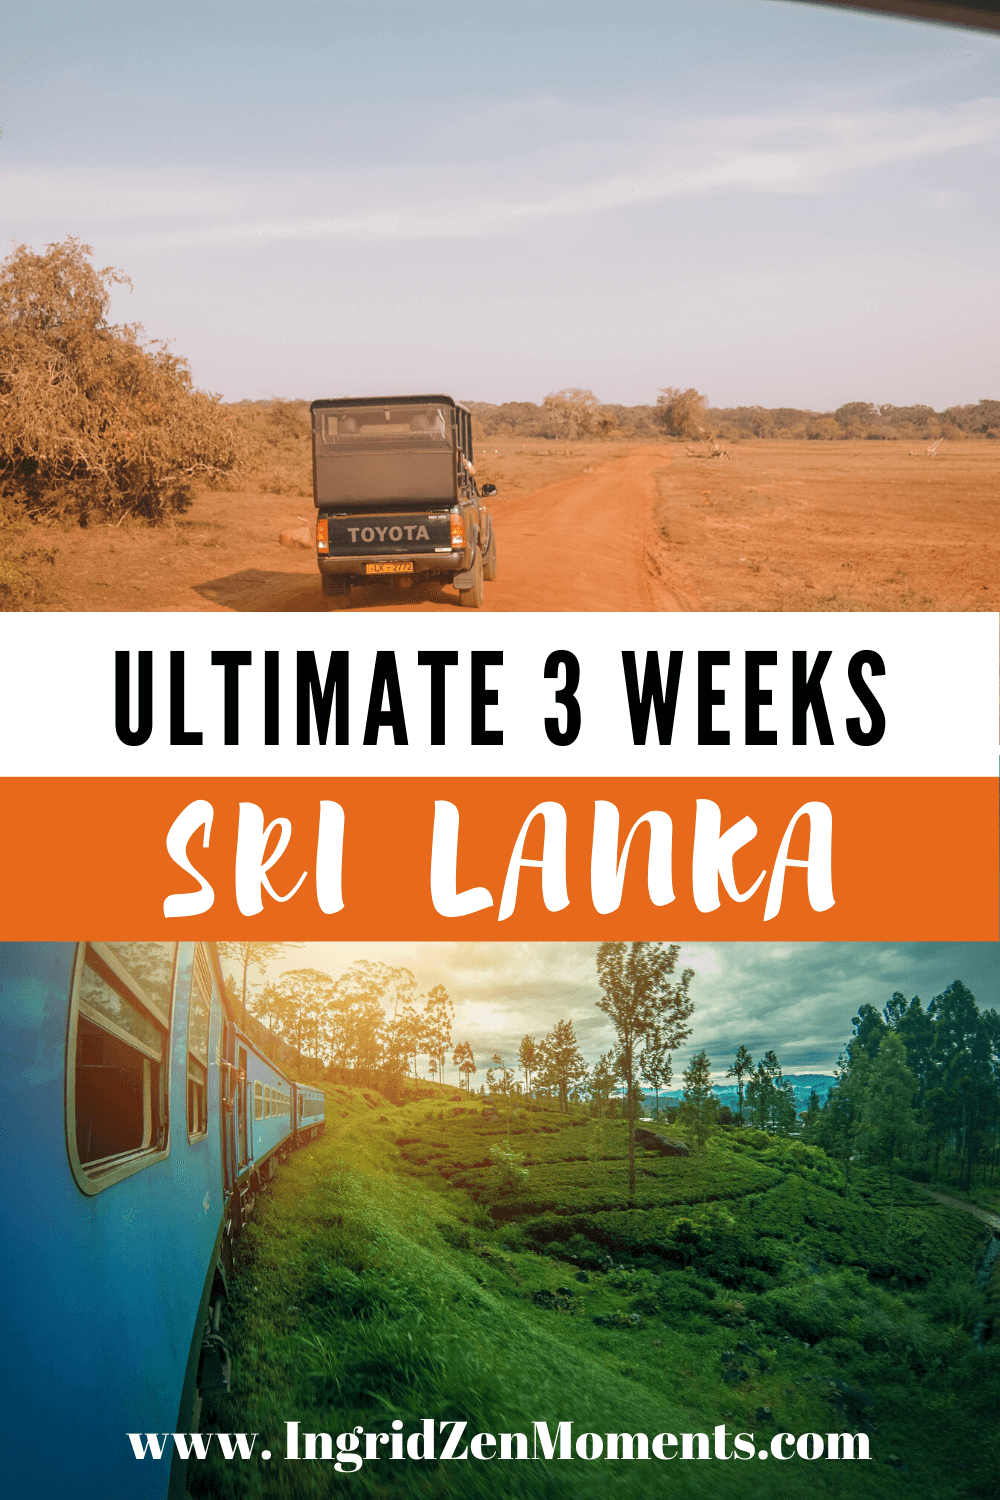 3 weeks Sri Lanka travel itinerary and perfect guide for what to pack for Sri Lanka. Create your Sri Lanka vacation so that you get to see almost everything worth doing on the island. Where to stay in Sri Lanka, what to eat in Sri Lanka, travel tips for Sri Lanka. #traveltips #srilanka #itinerary #bucketlist